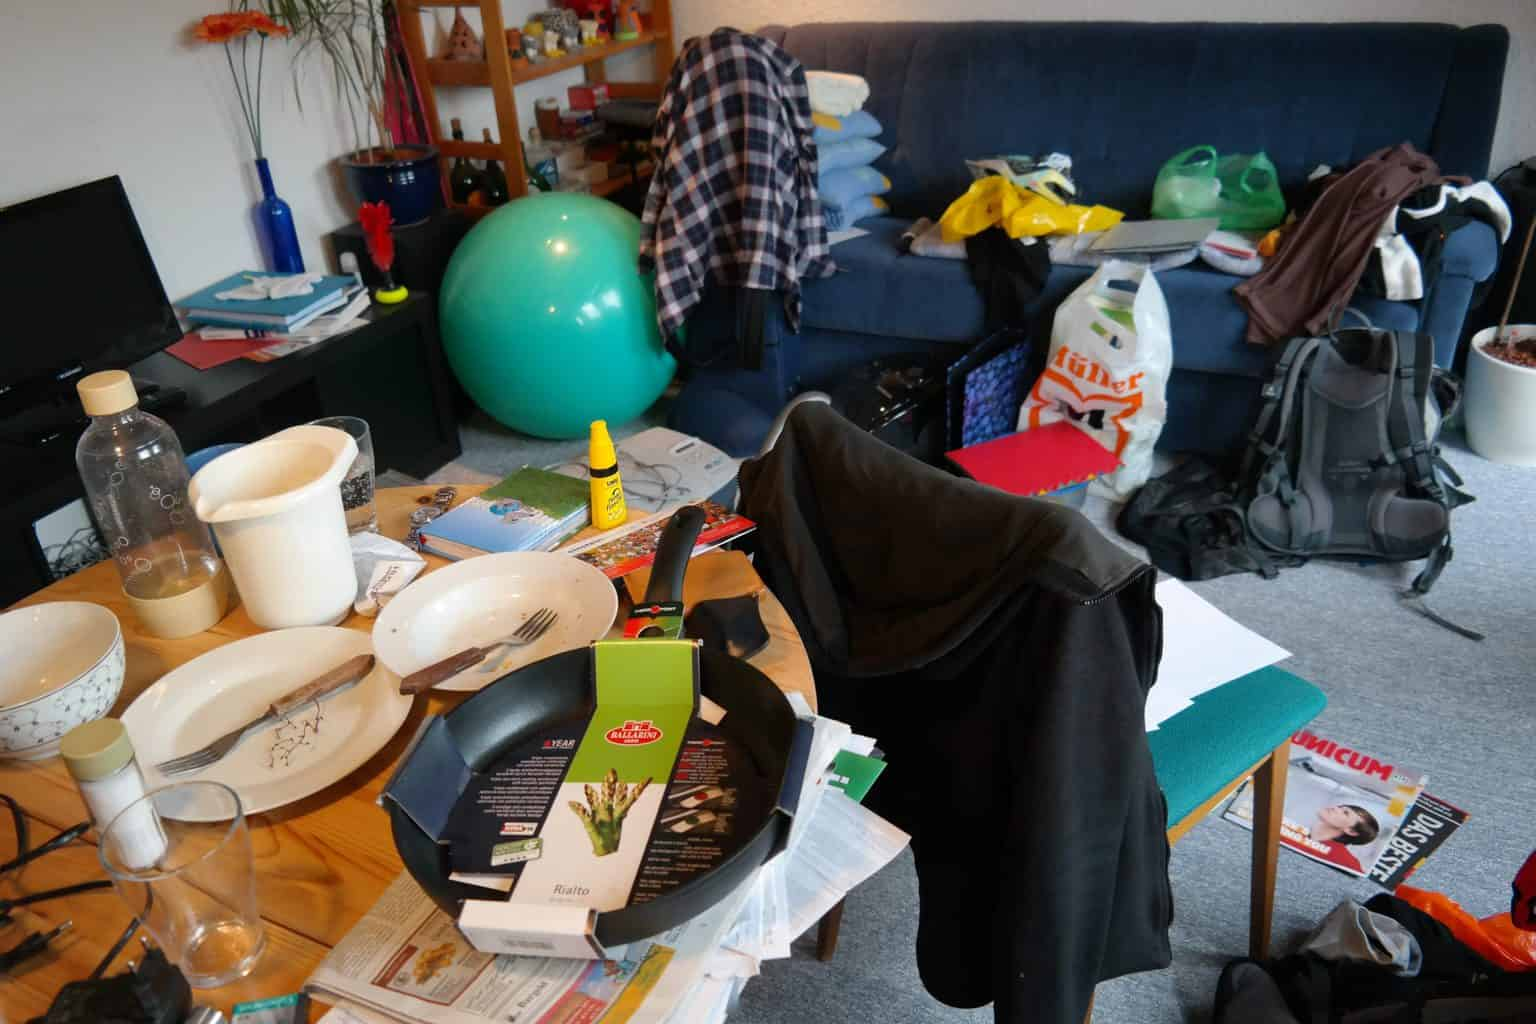 A messy room full of junk